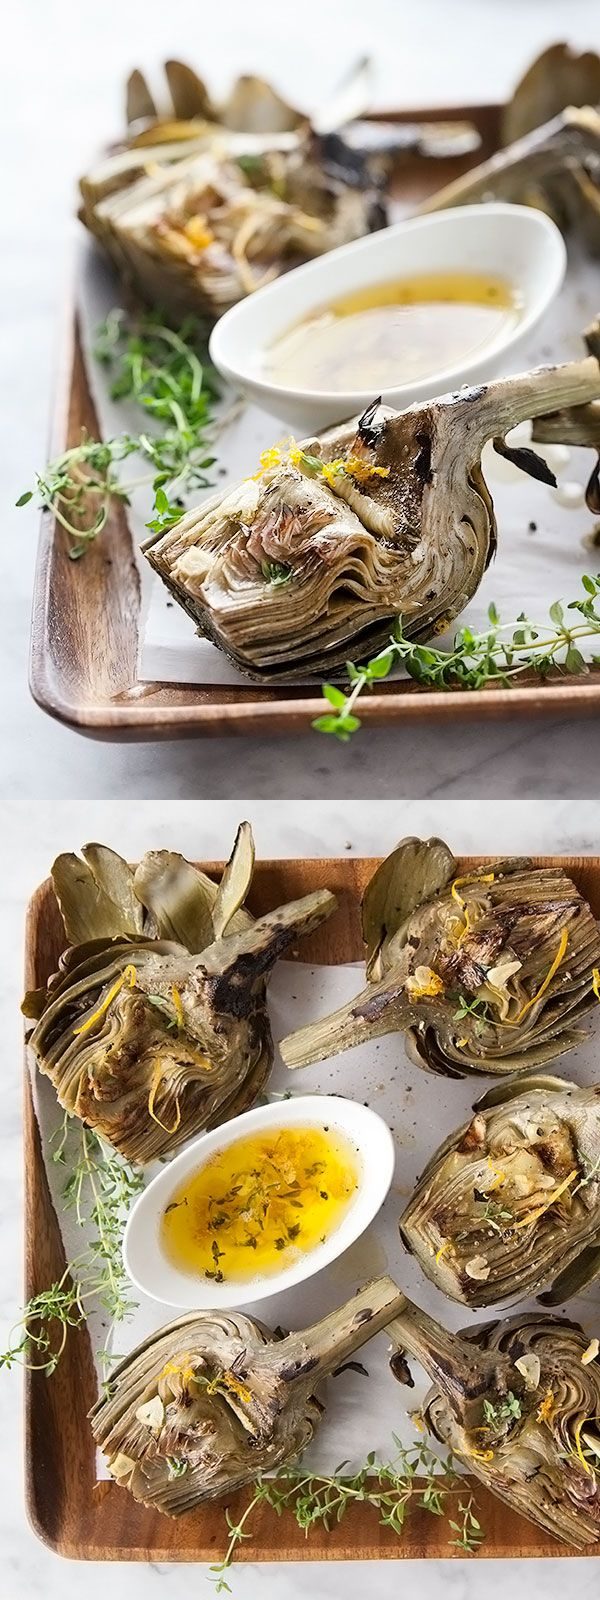 Grilled Artichokes with a super flavorful Garlic Butter. I could make it a meal in itself!   foodiecrush.com